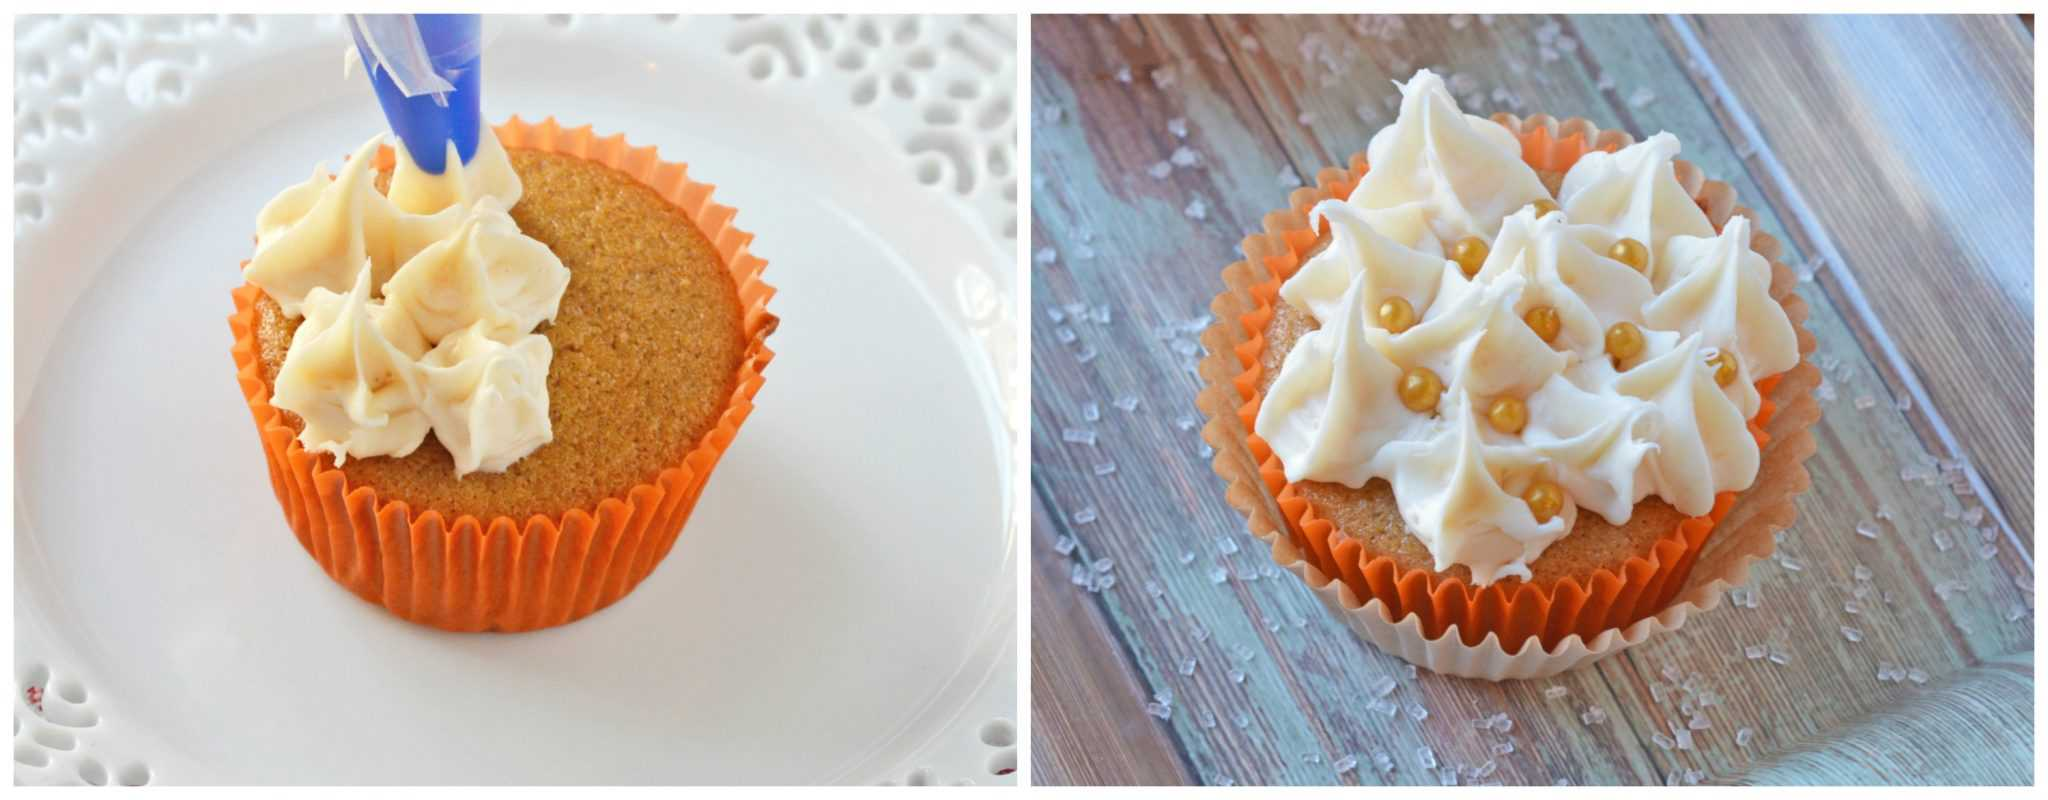 Spice Cupcakes are an easy cupcake recipe perfect for fall. Frost with rich cream cheese frosting and a few embellishments for festive fall cupcakes. #spicecake #easycupcakerecipes www.savoryexperiments.com